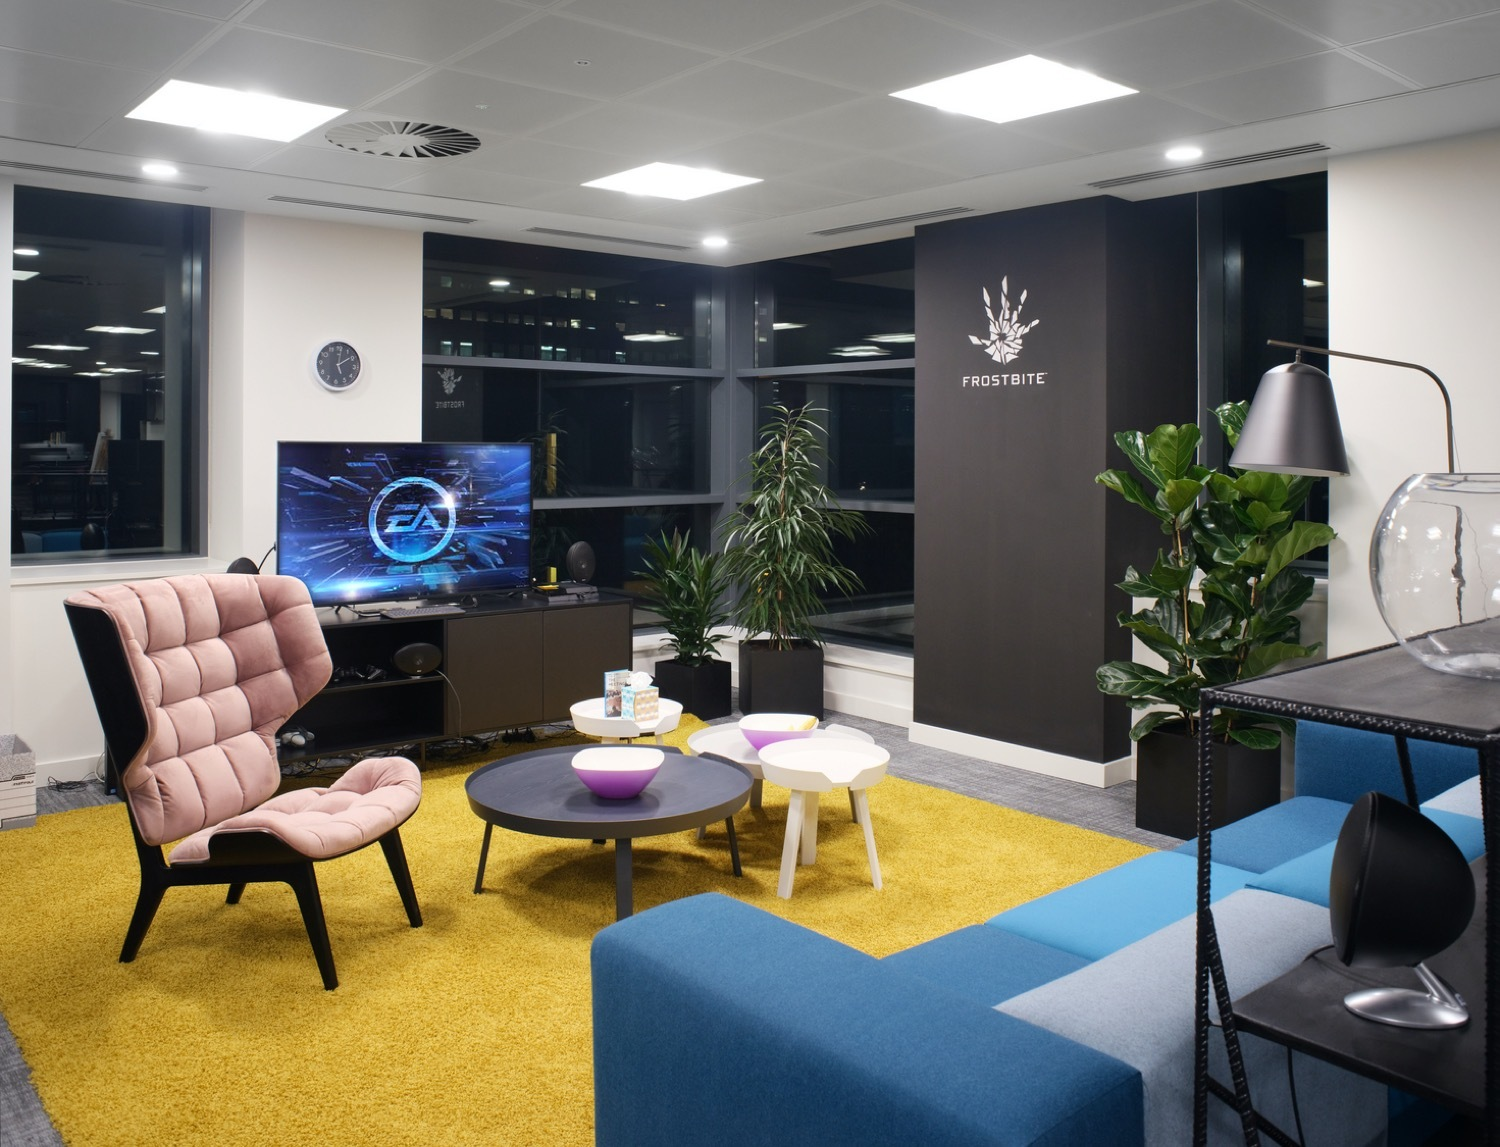 Agile office breakout space with soft furniture